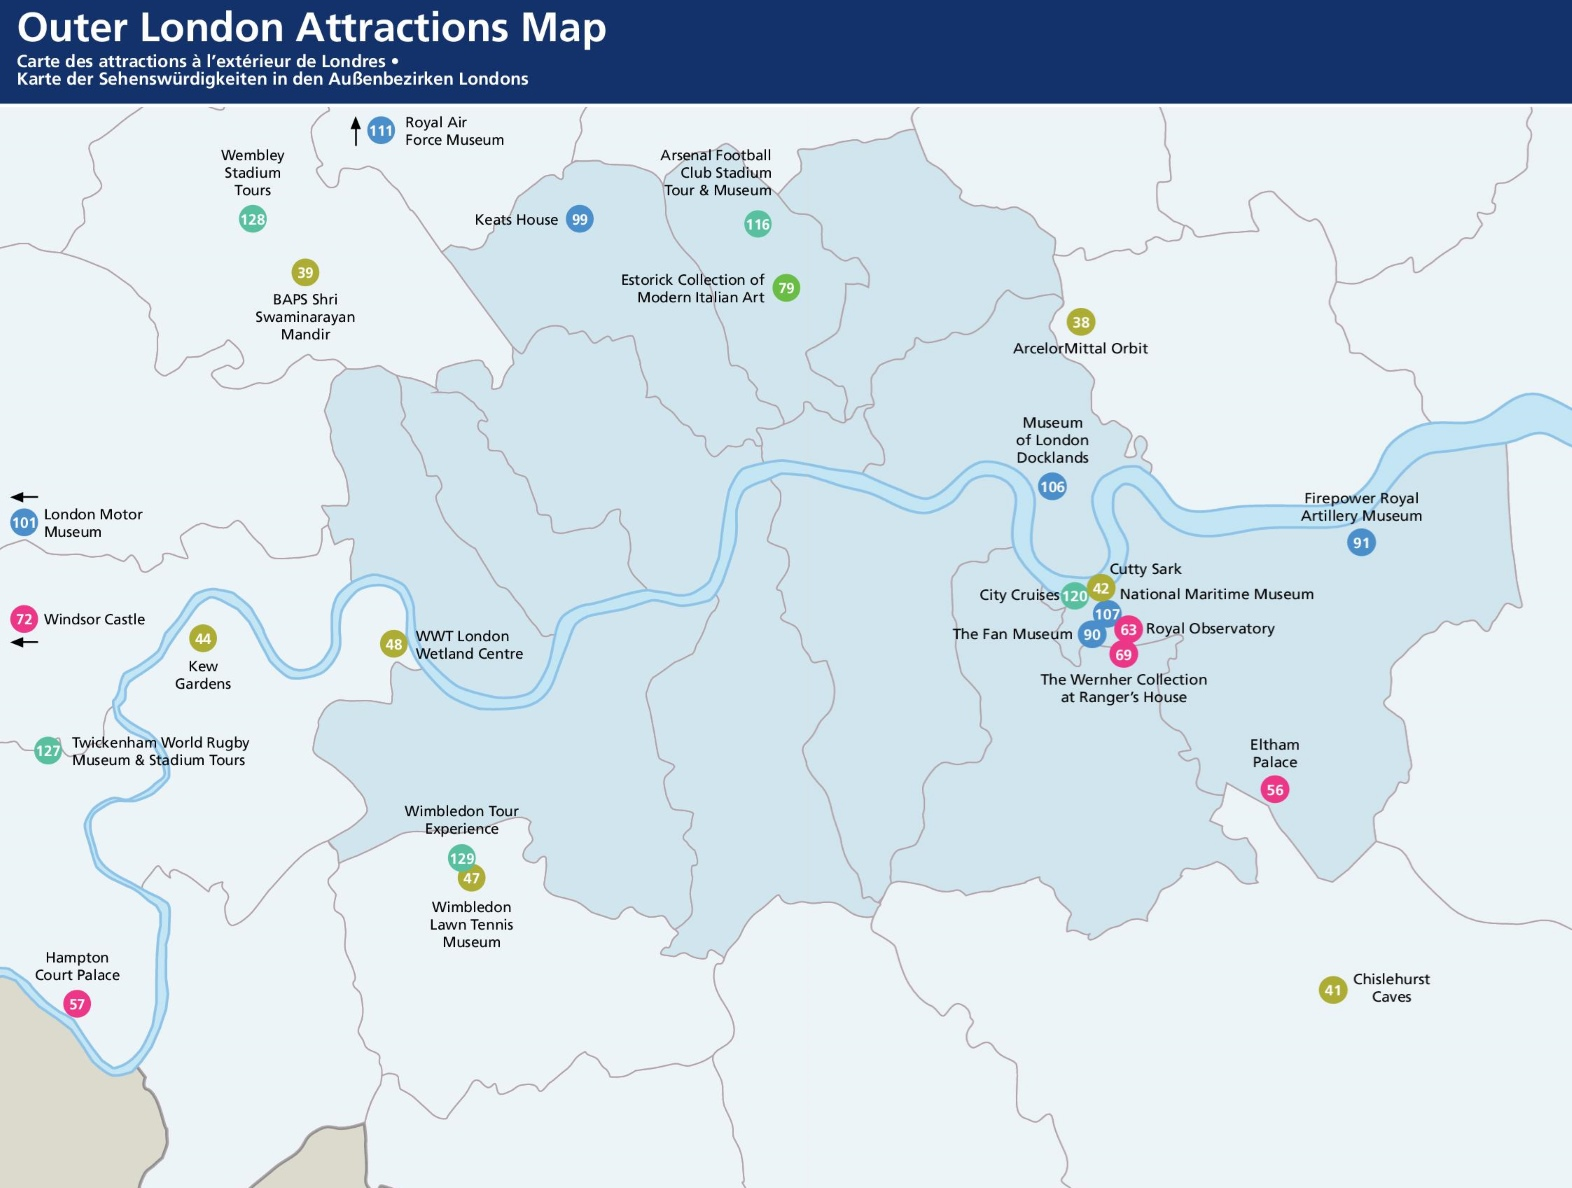 Outer London tourist attractions map – London Map of Tourist Attractions